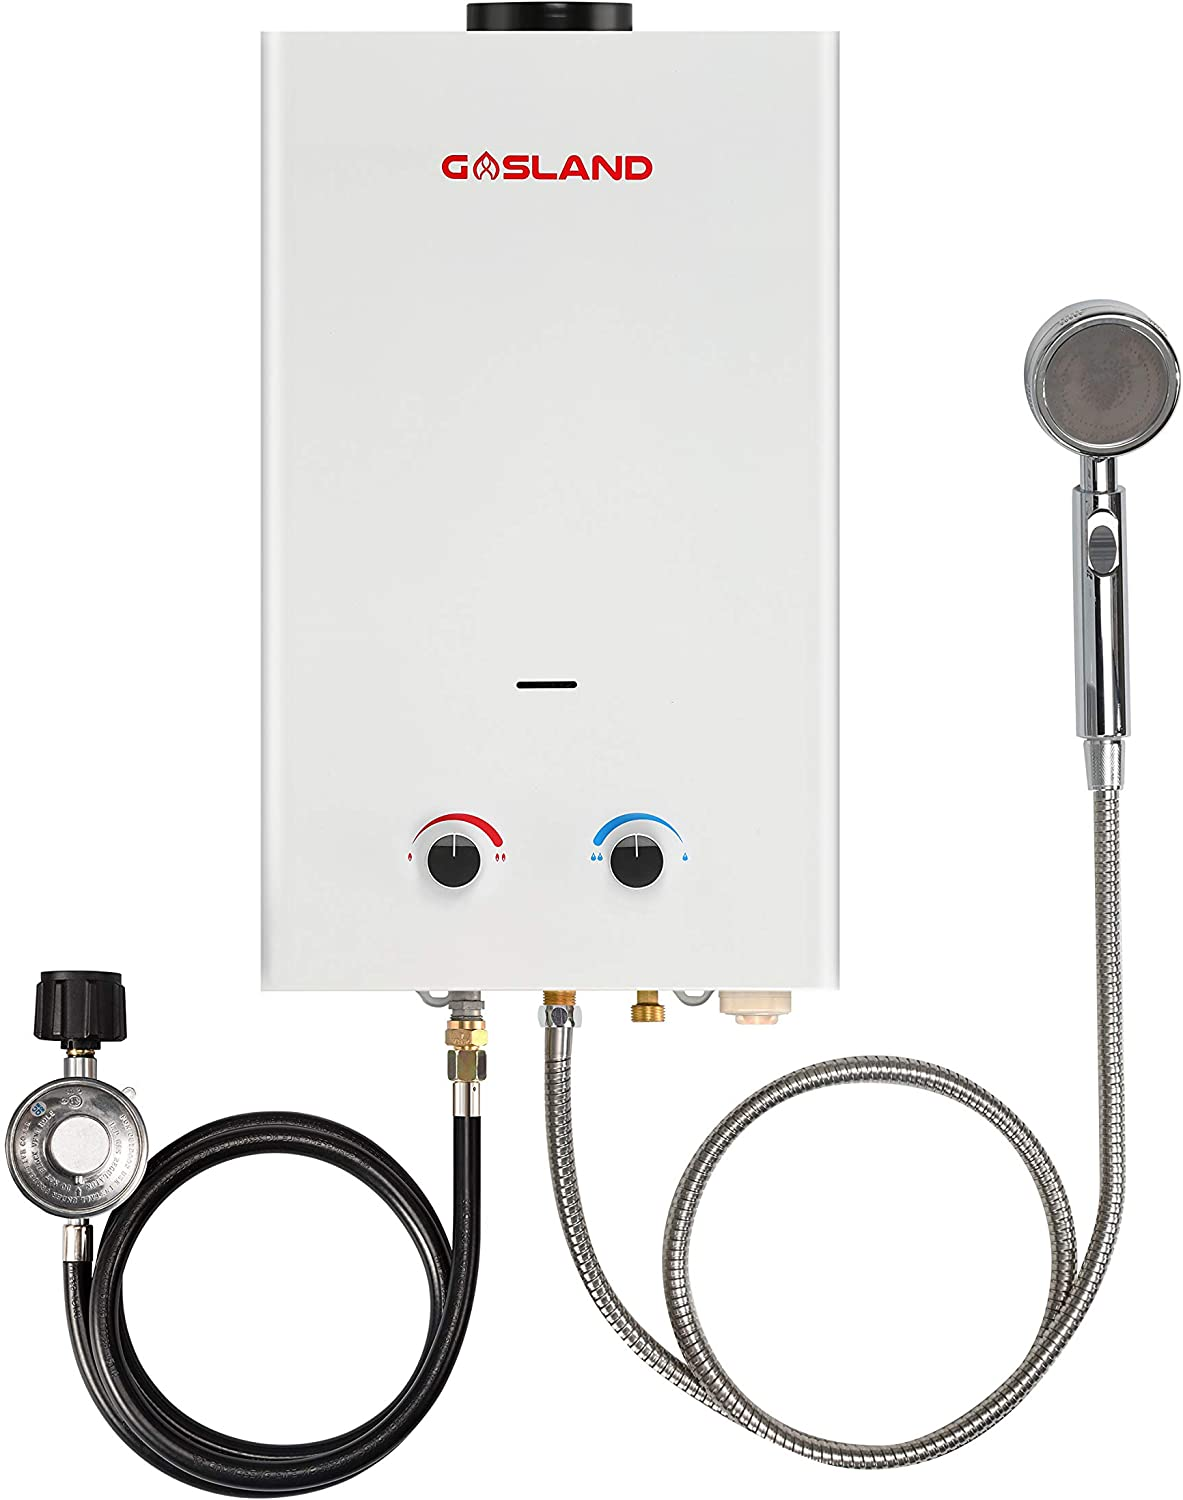 GASLAND Outdoors Propane Water Heater 10L BS264 2.64GPM